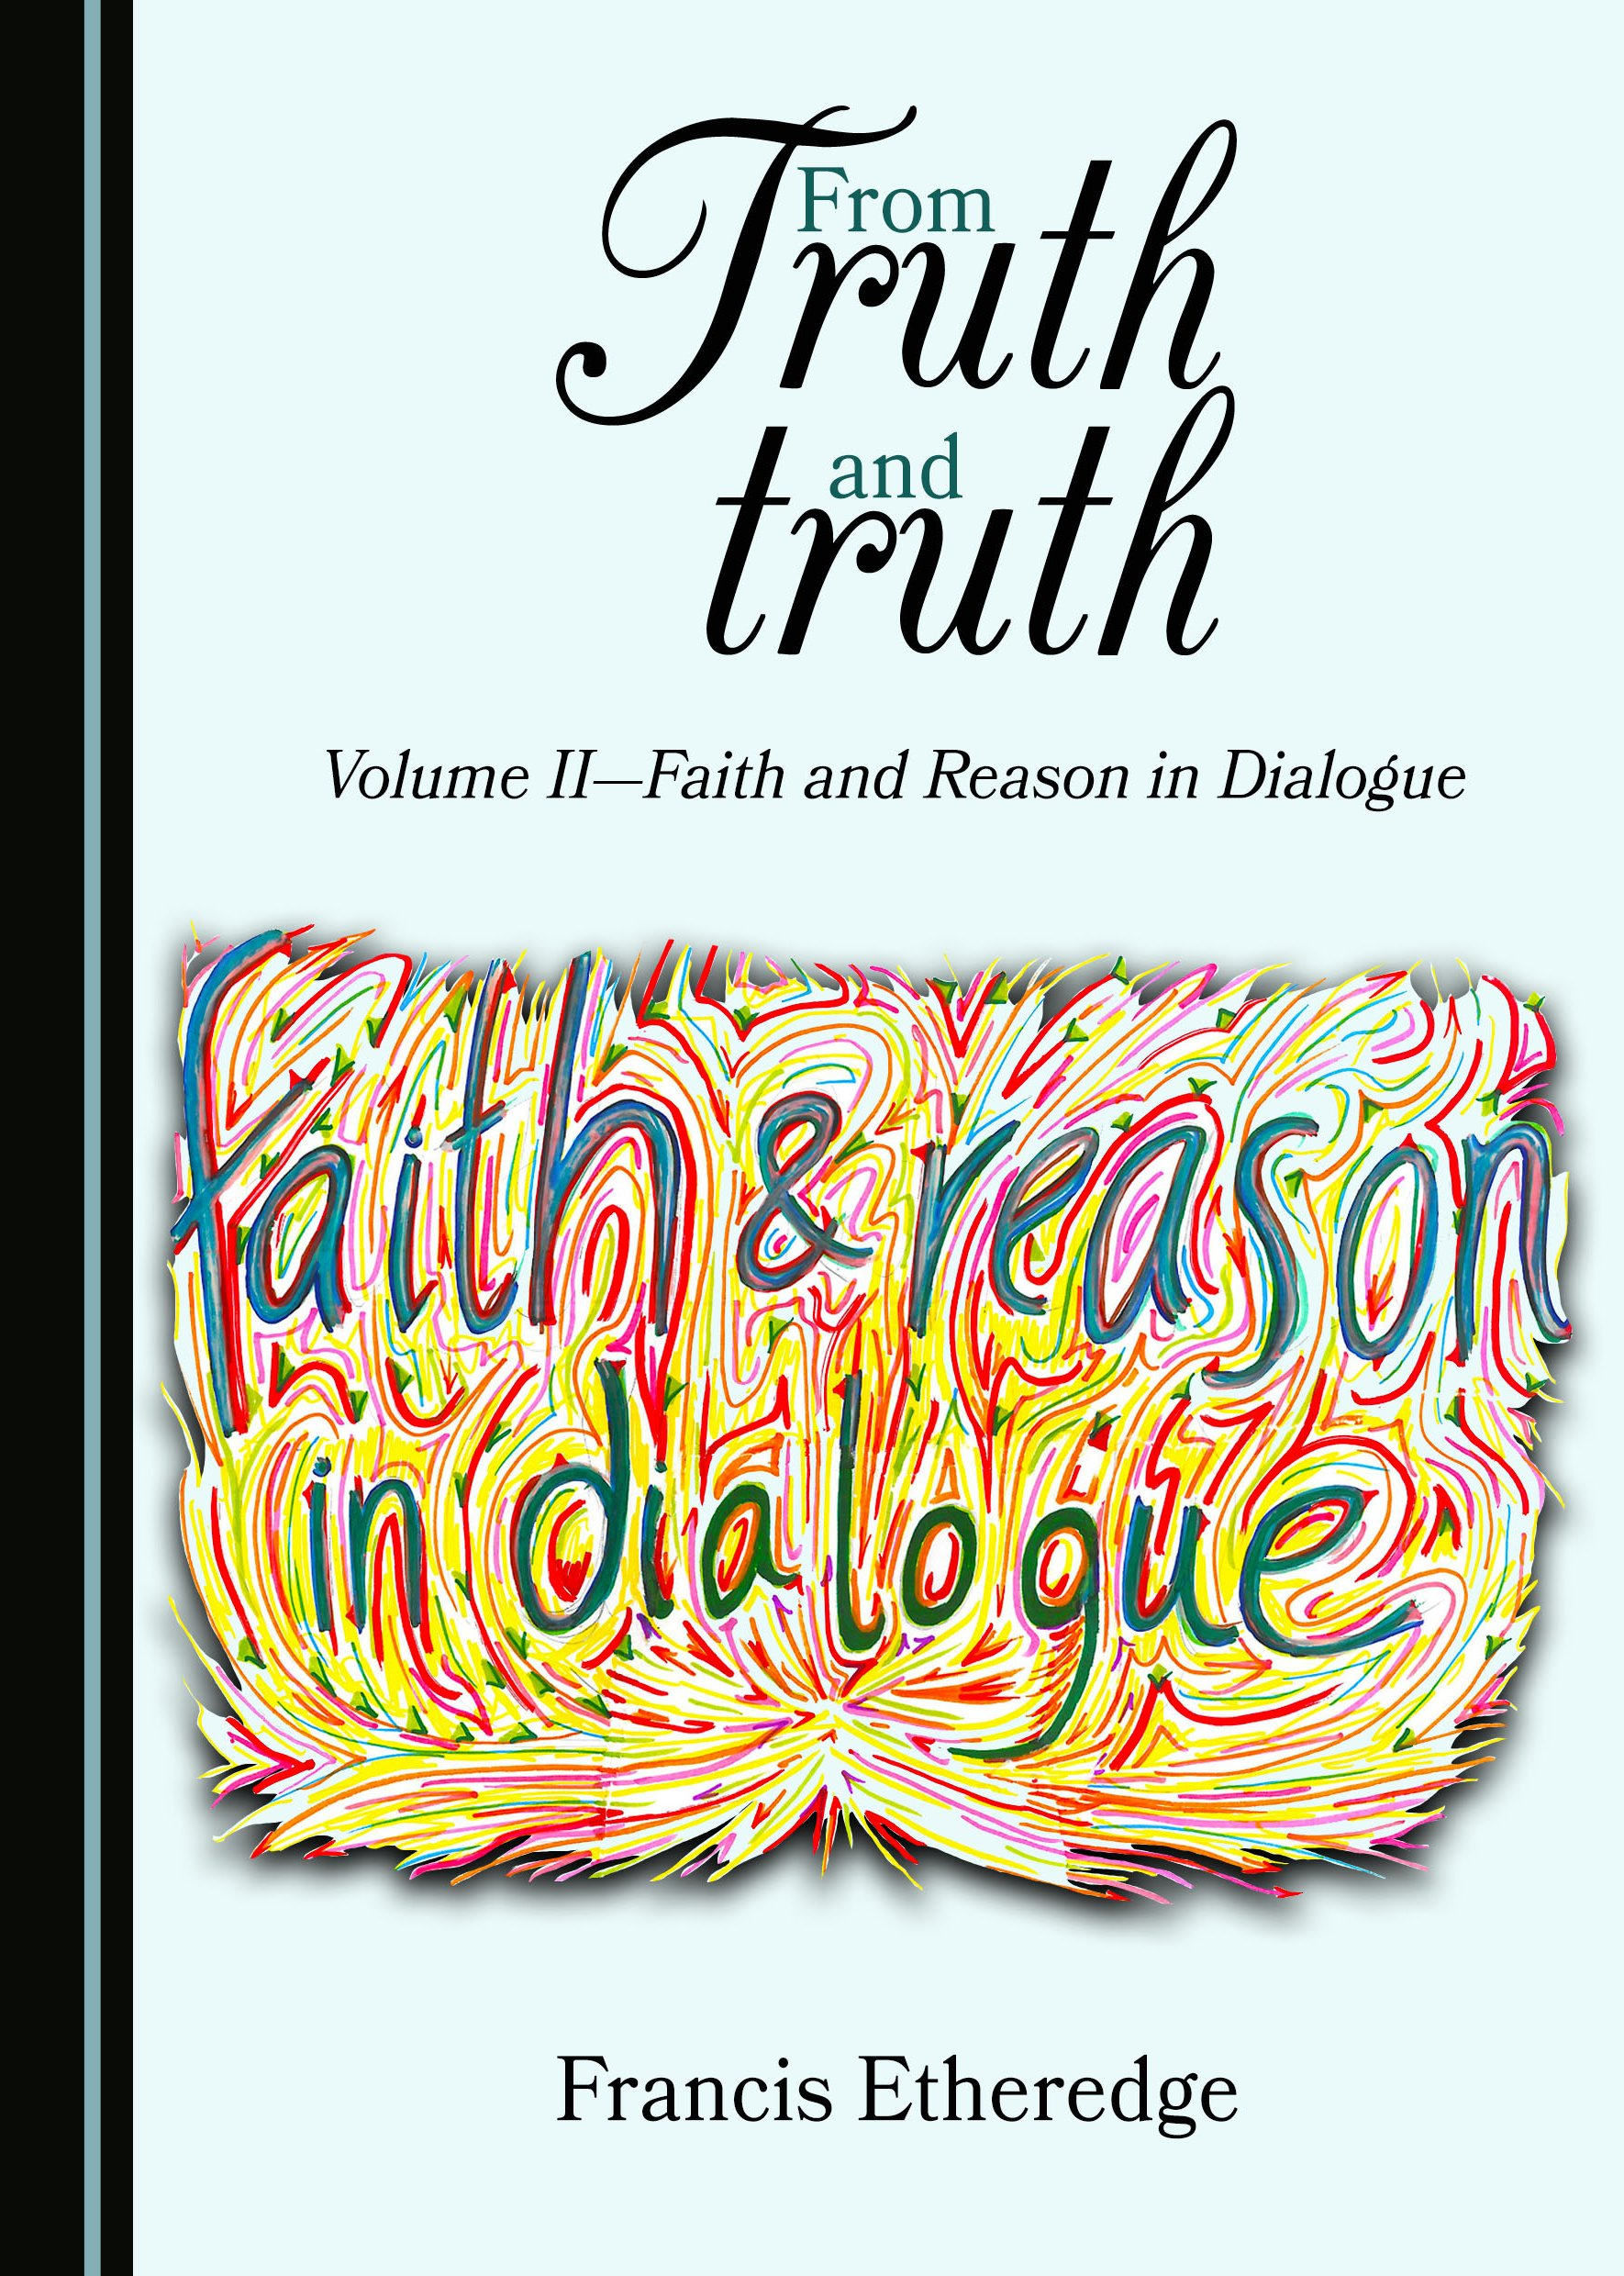 From Truth and truth: Volume II—Faith and Reason in Dialogue